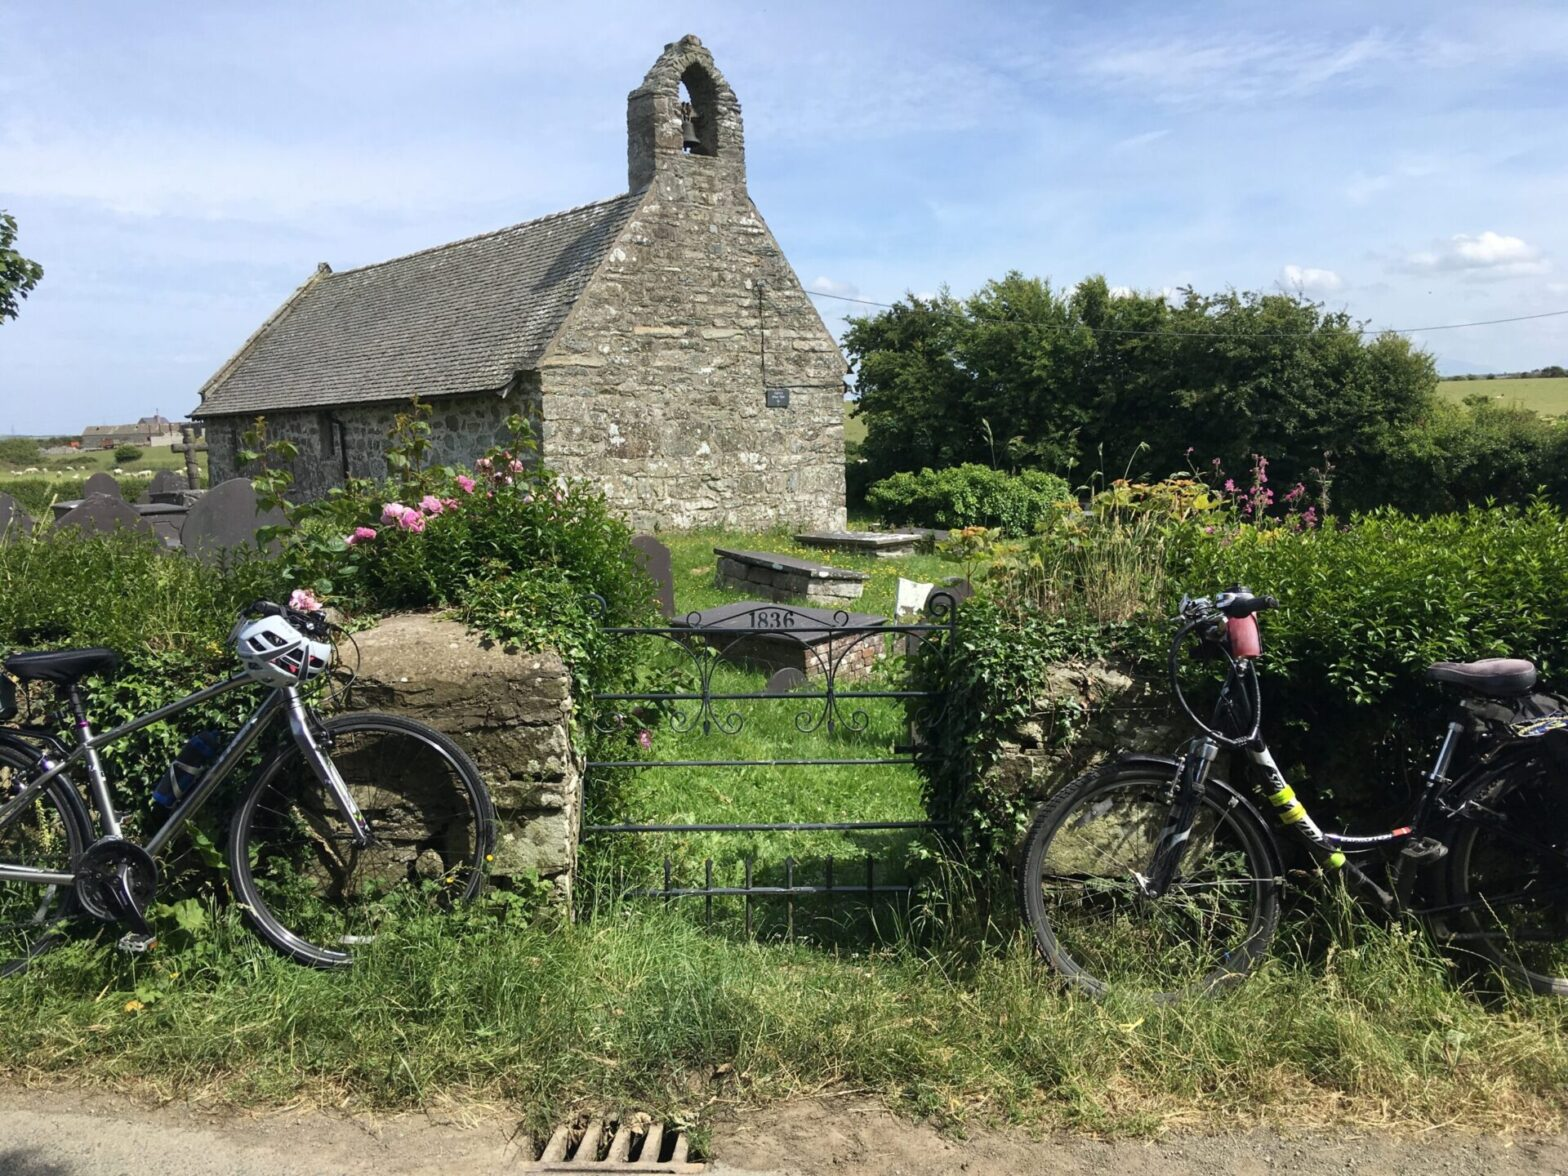 Two bikes rest at gate of Pabo Sant Church, during Off the Beaten Track, Sacred Spaces on Ynys Môn, Anglesey Guided Bike Tour.